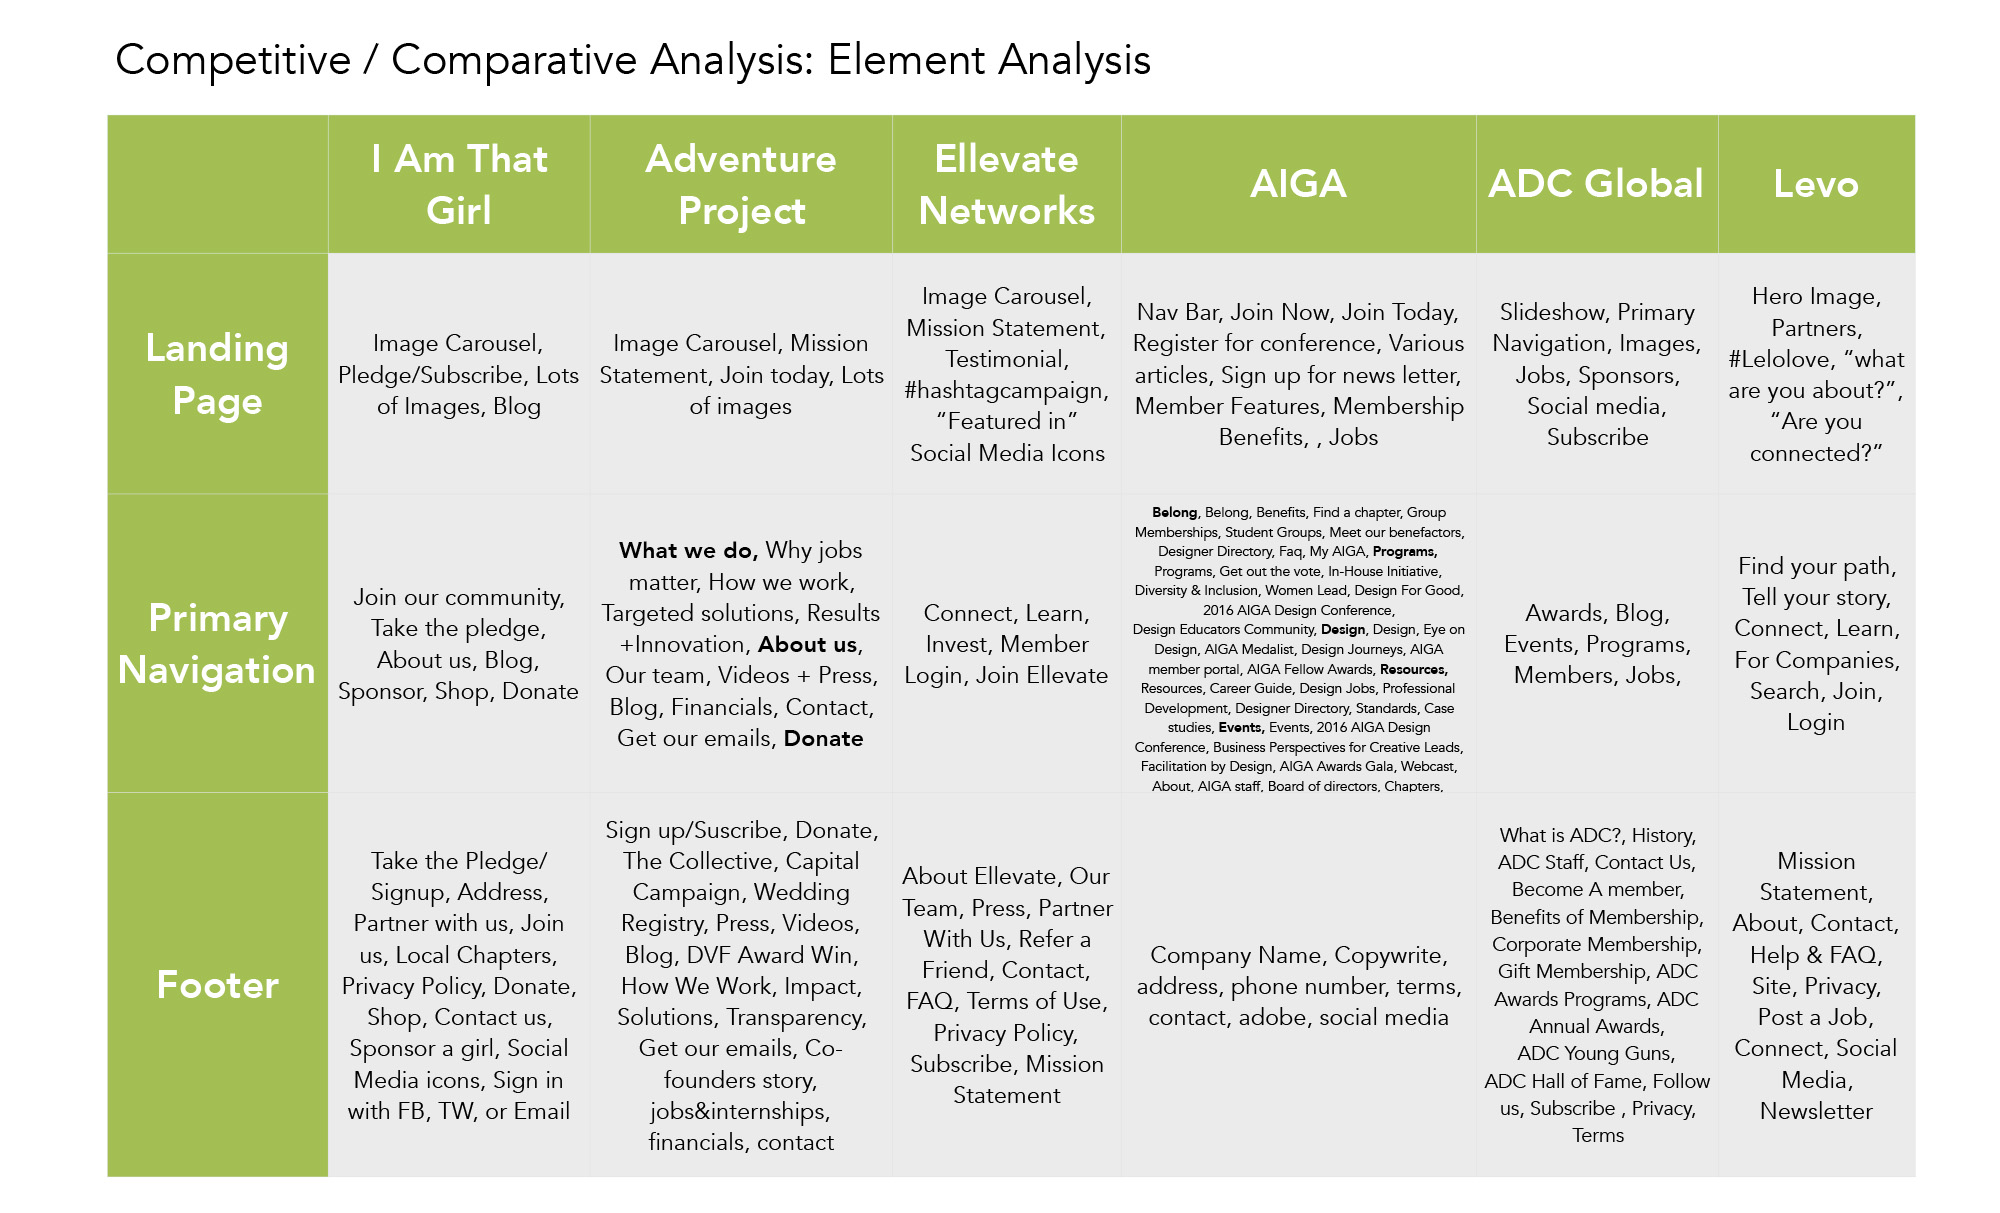 NYWSE_Competitive_Analysis_092616_0003_NYWSE_Deliverables 20.jpg